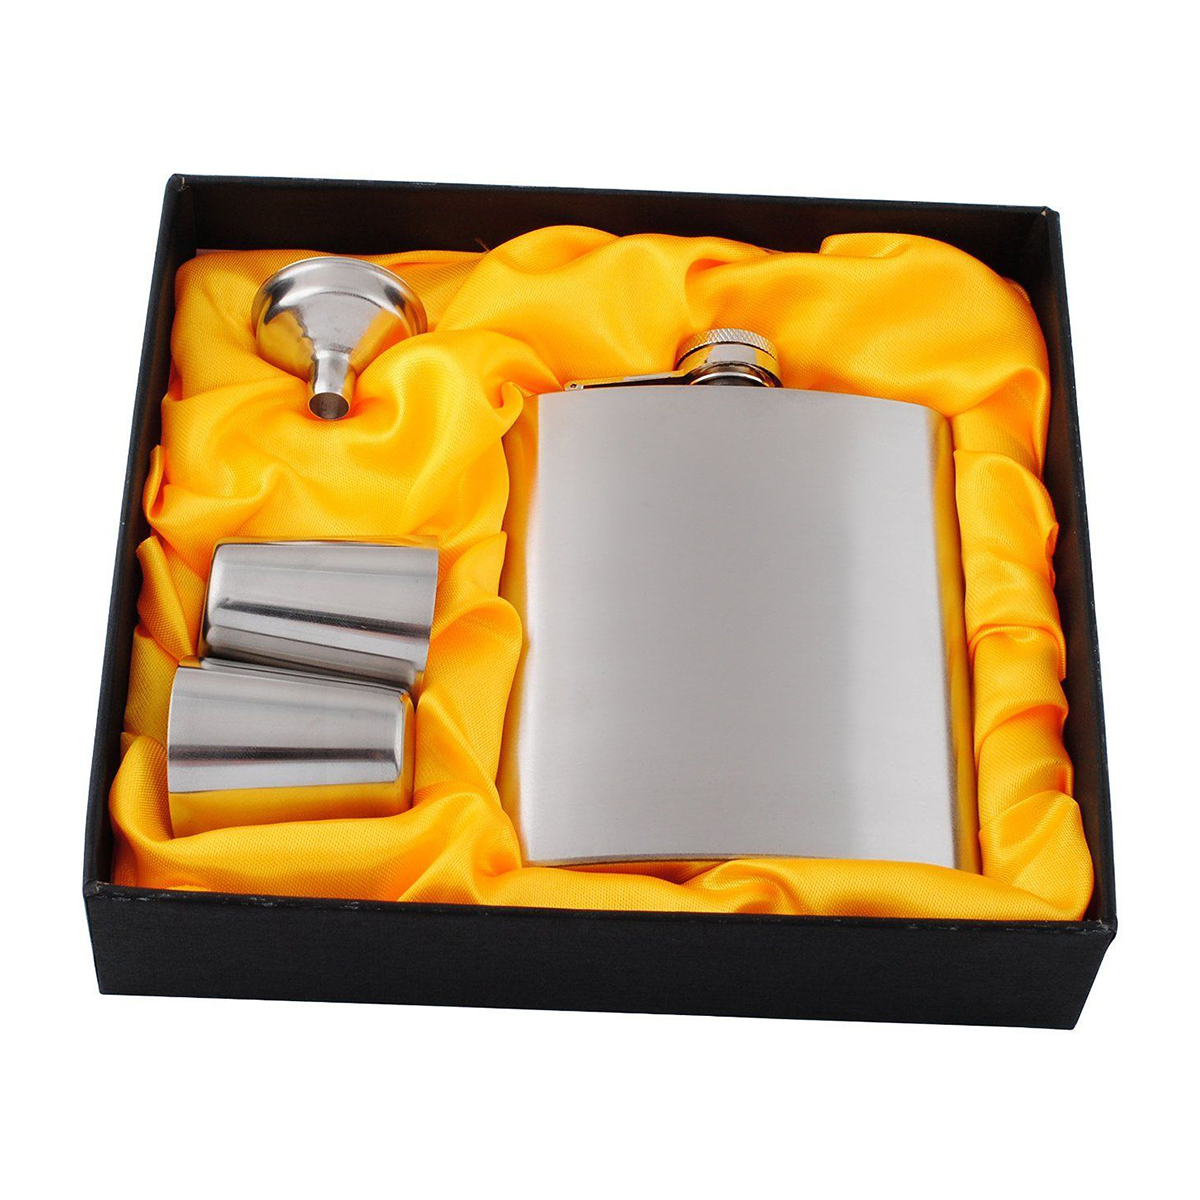 120*95*22mm Stainless Steel 7oz Hip Flask with Funnel Drinking Cups for whisky vodka